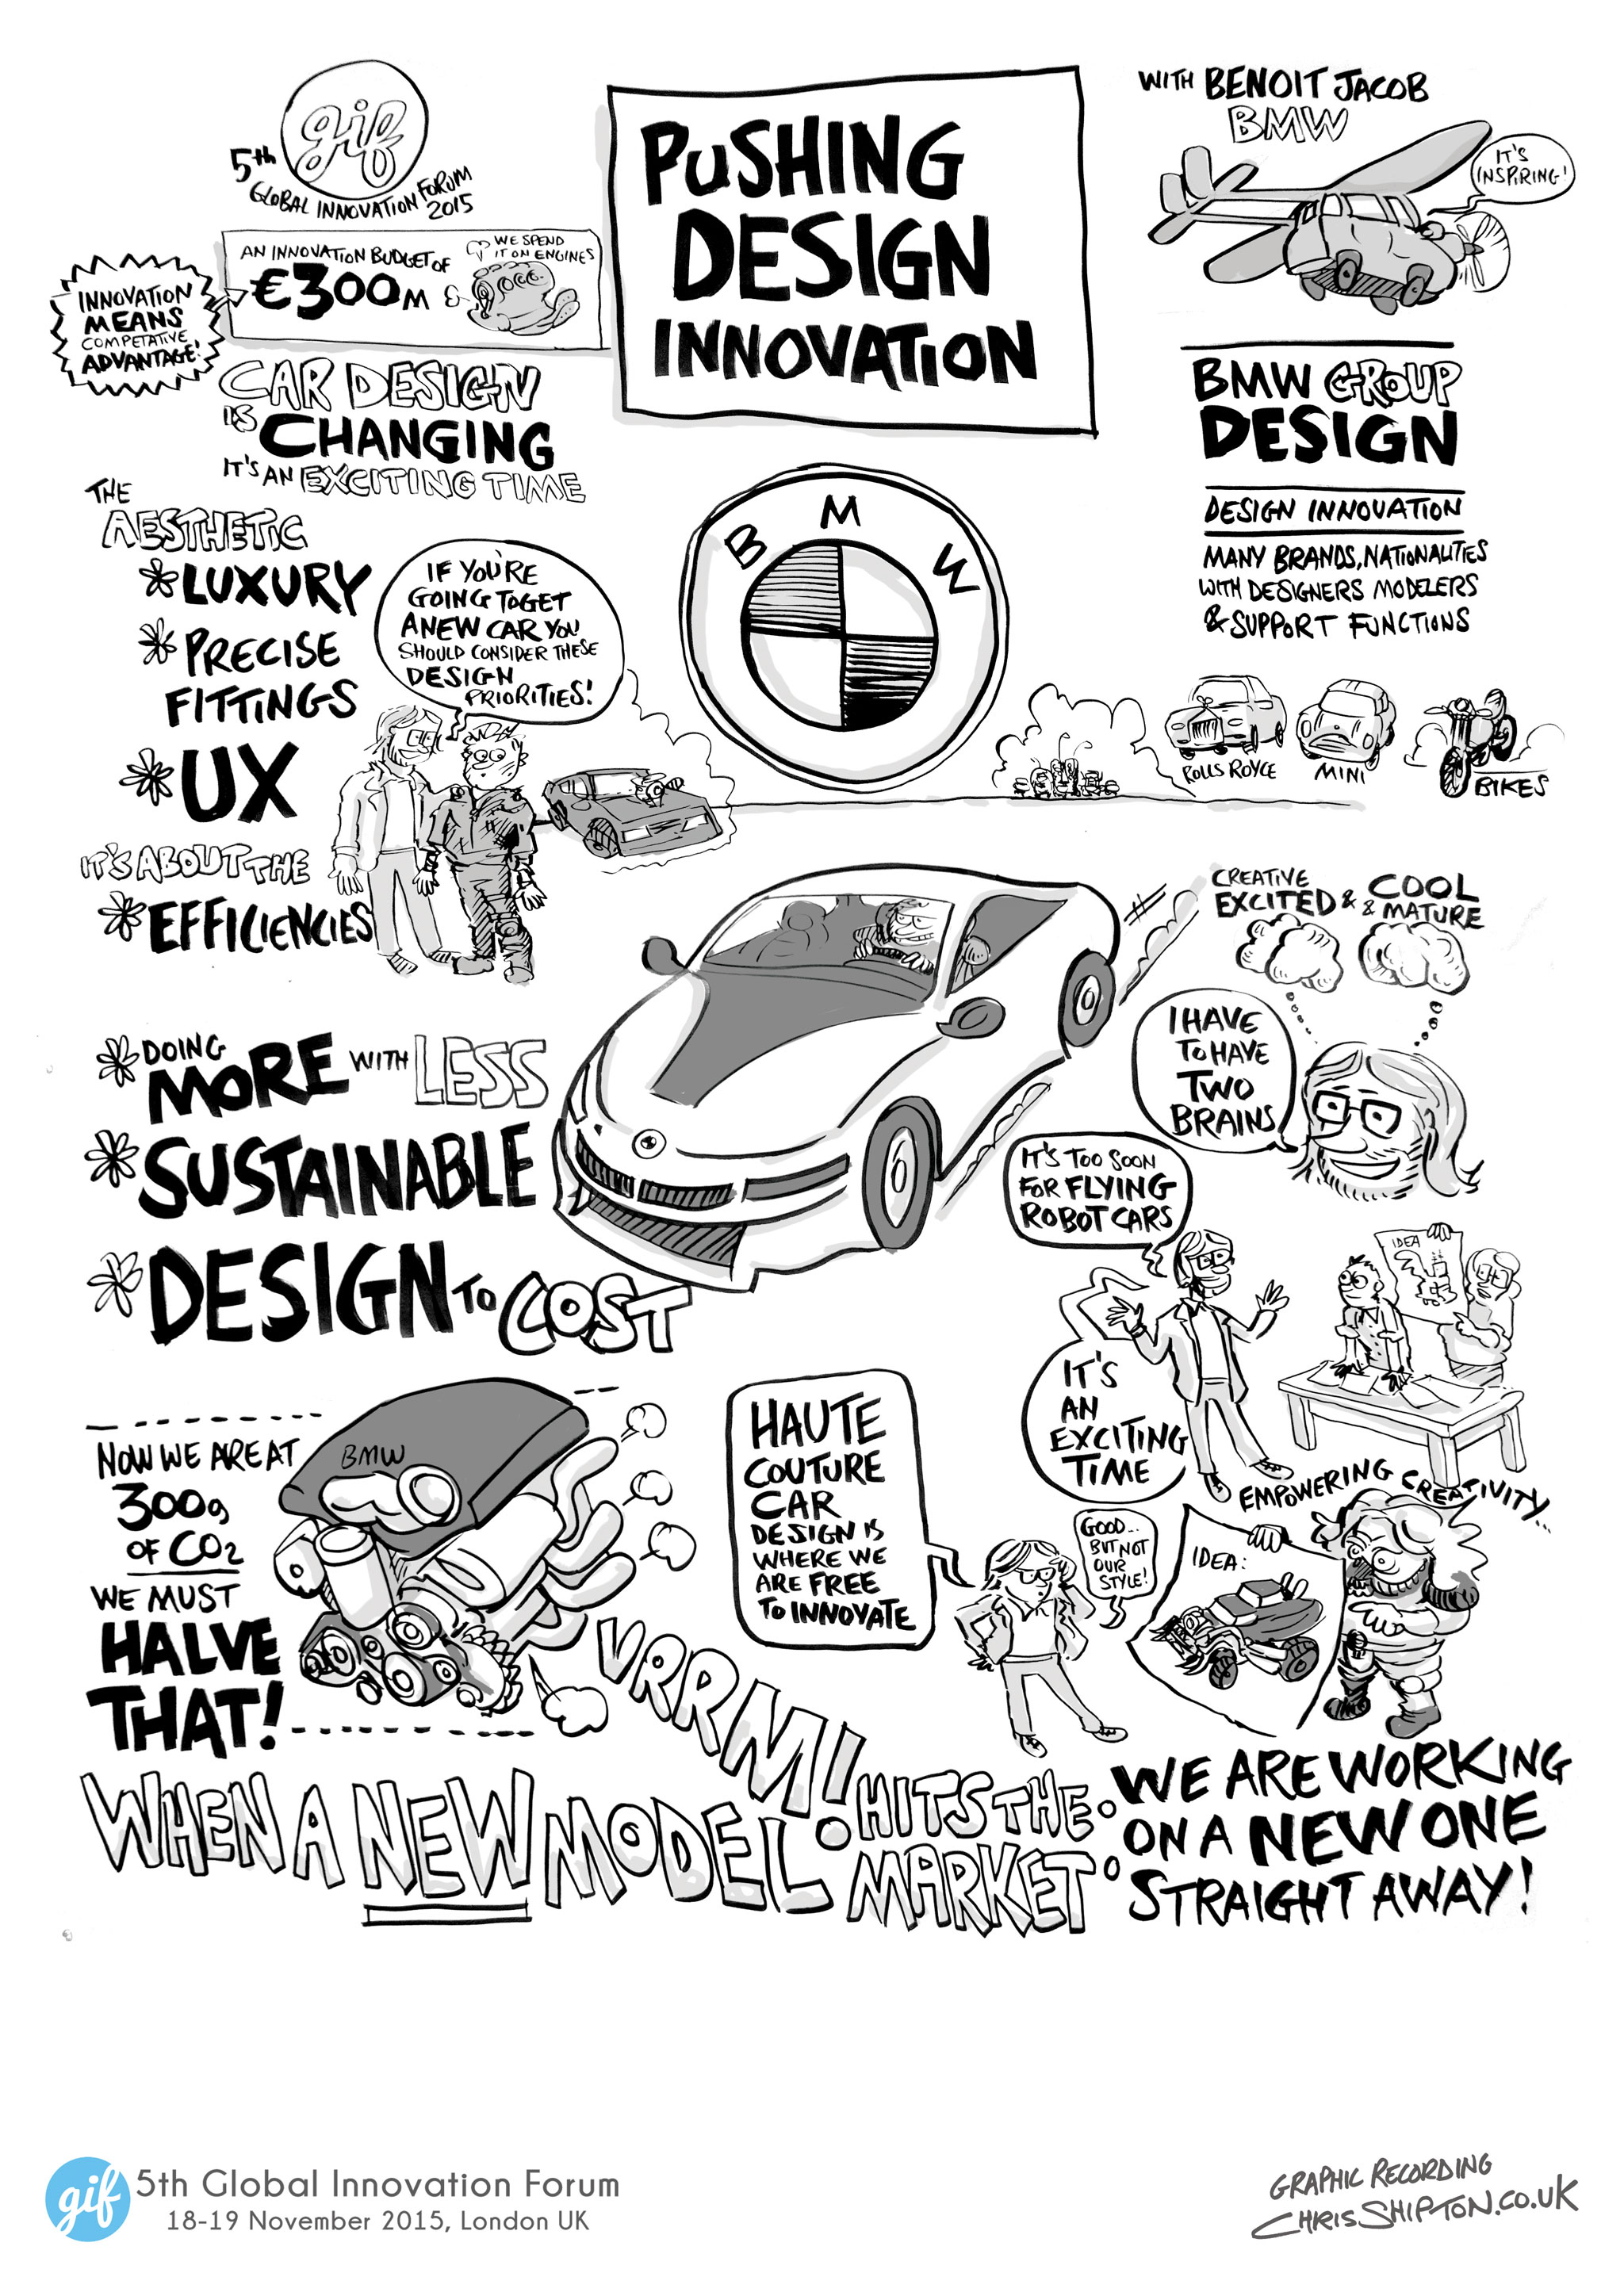 Graphic Recording of a talk by BMW at the Global Innovation forum 2015